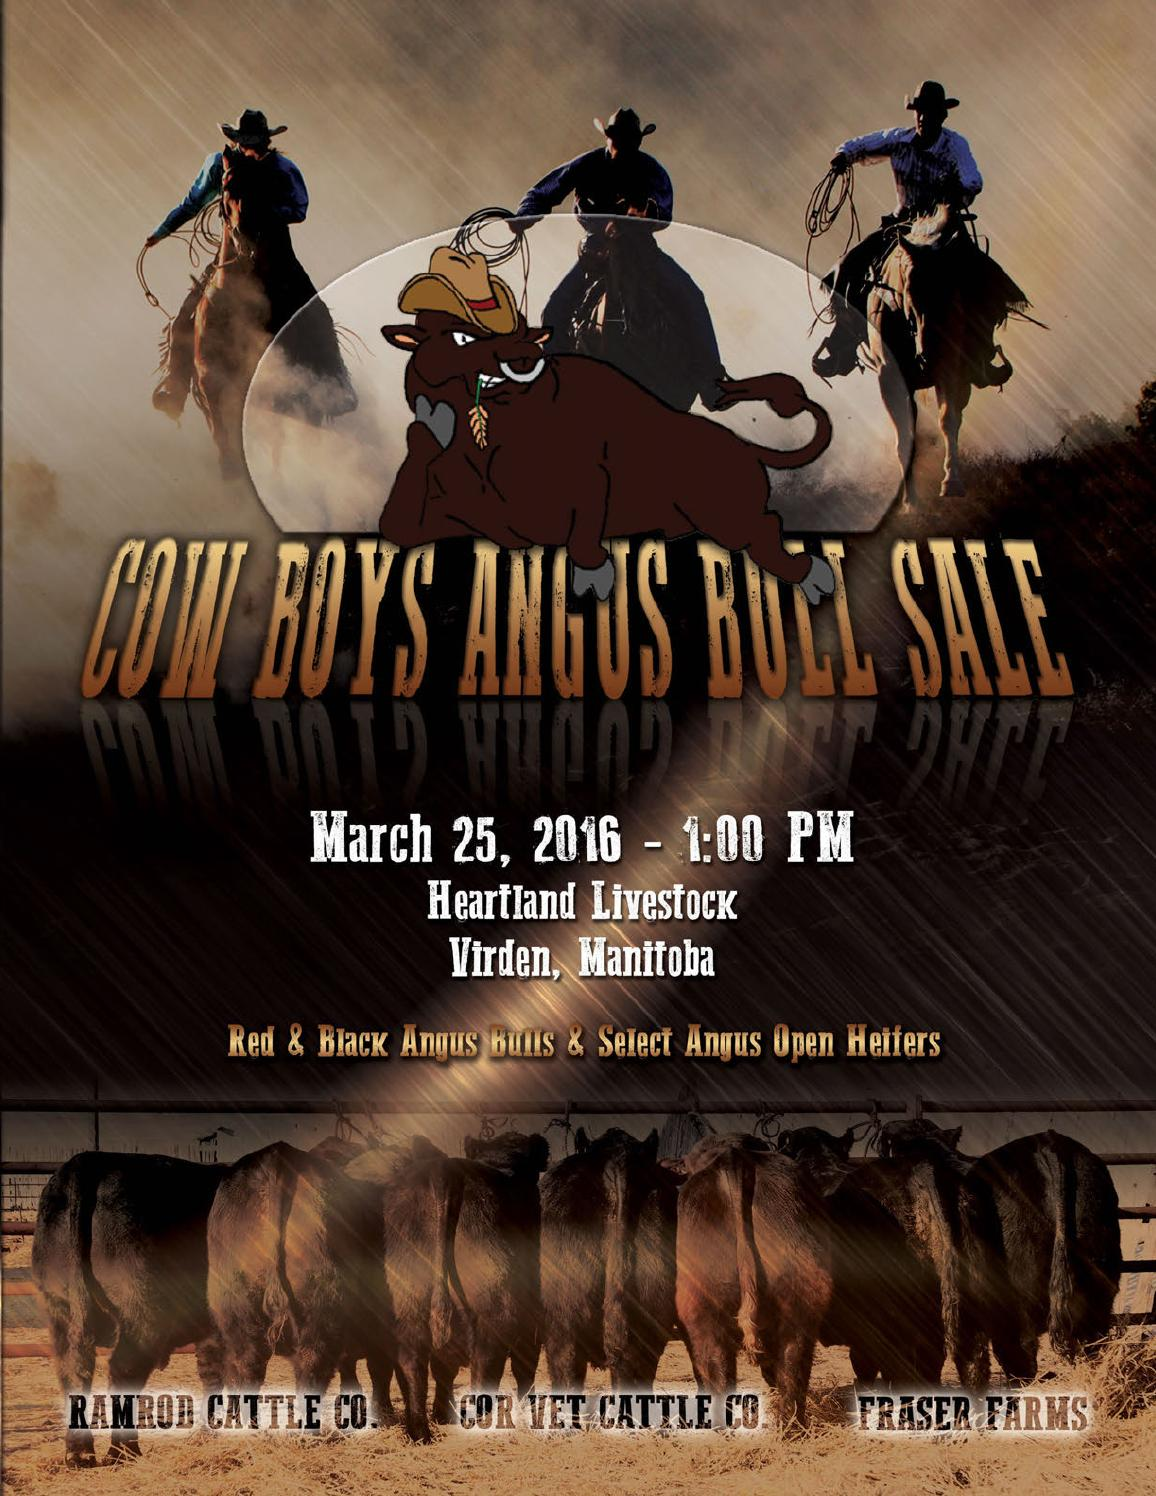 Cow boys angus bull sale 2016 by today 39 s publishing inc for T s dining virden